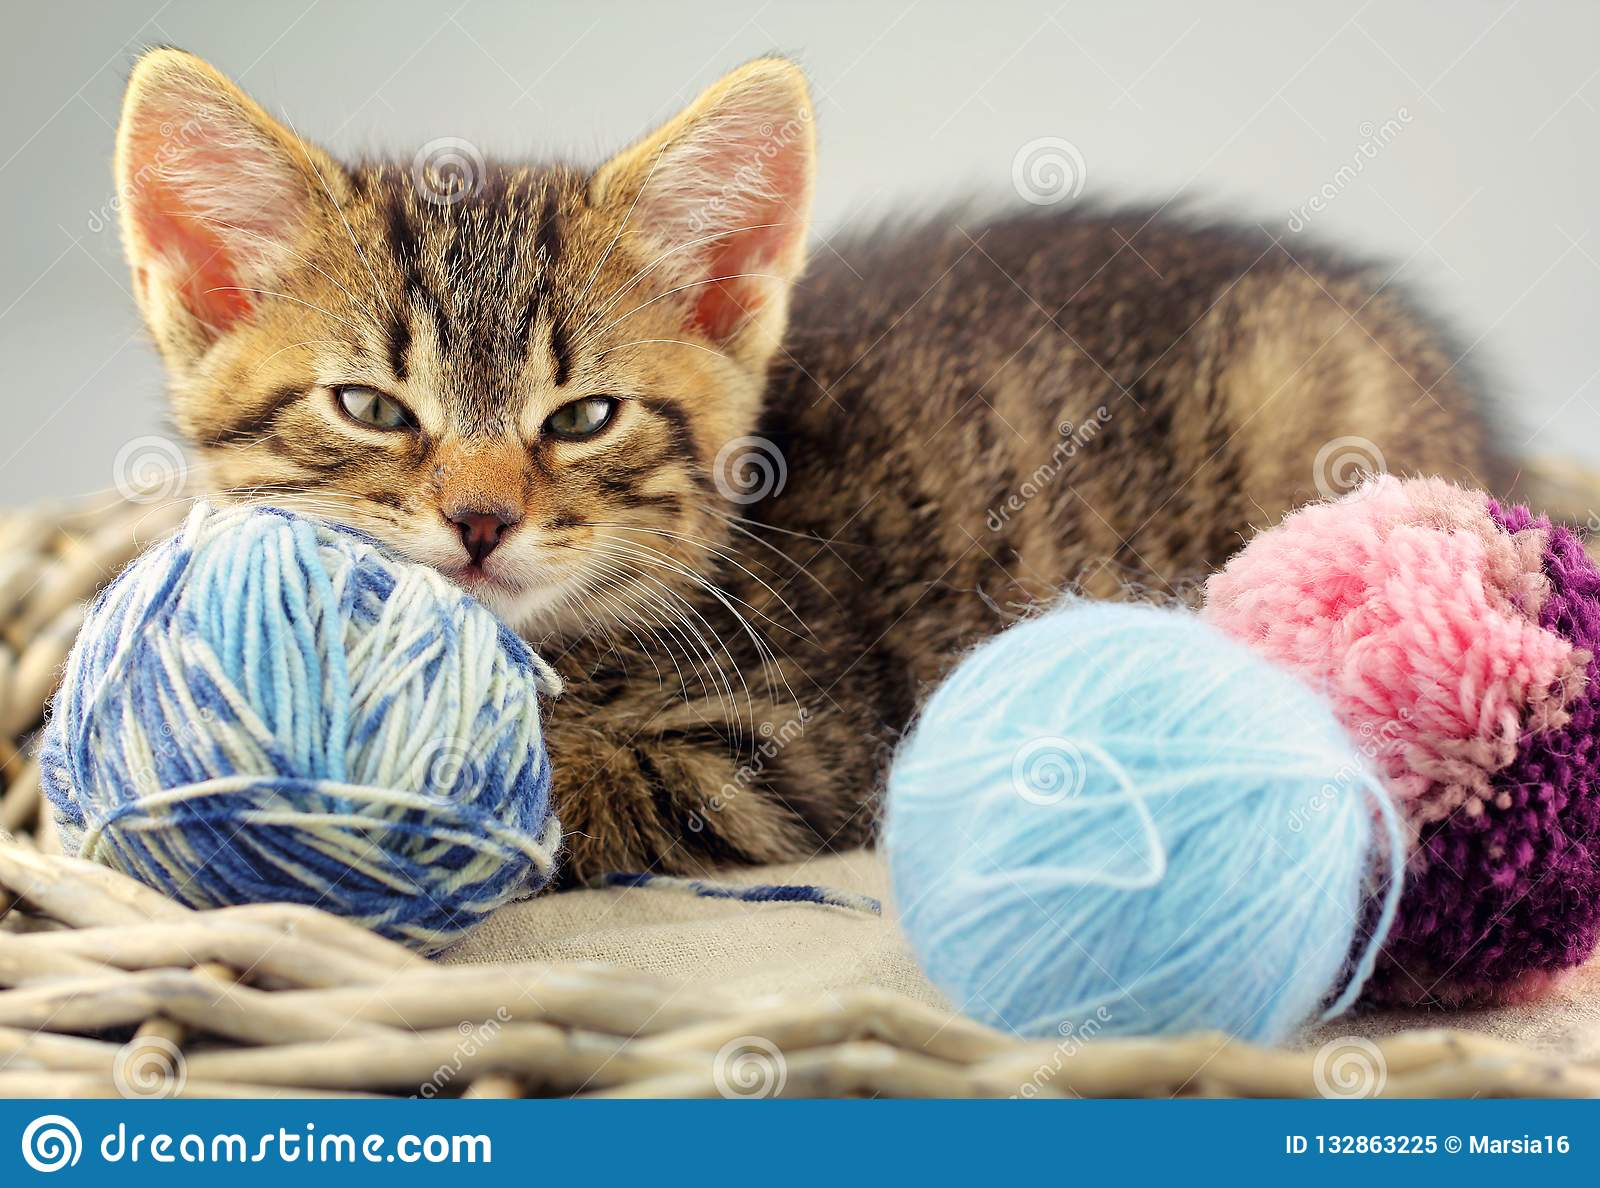 Kitten with a yarn balls of wool